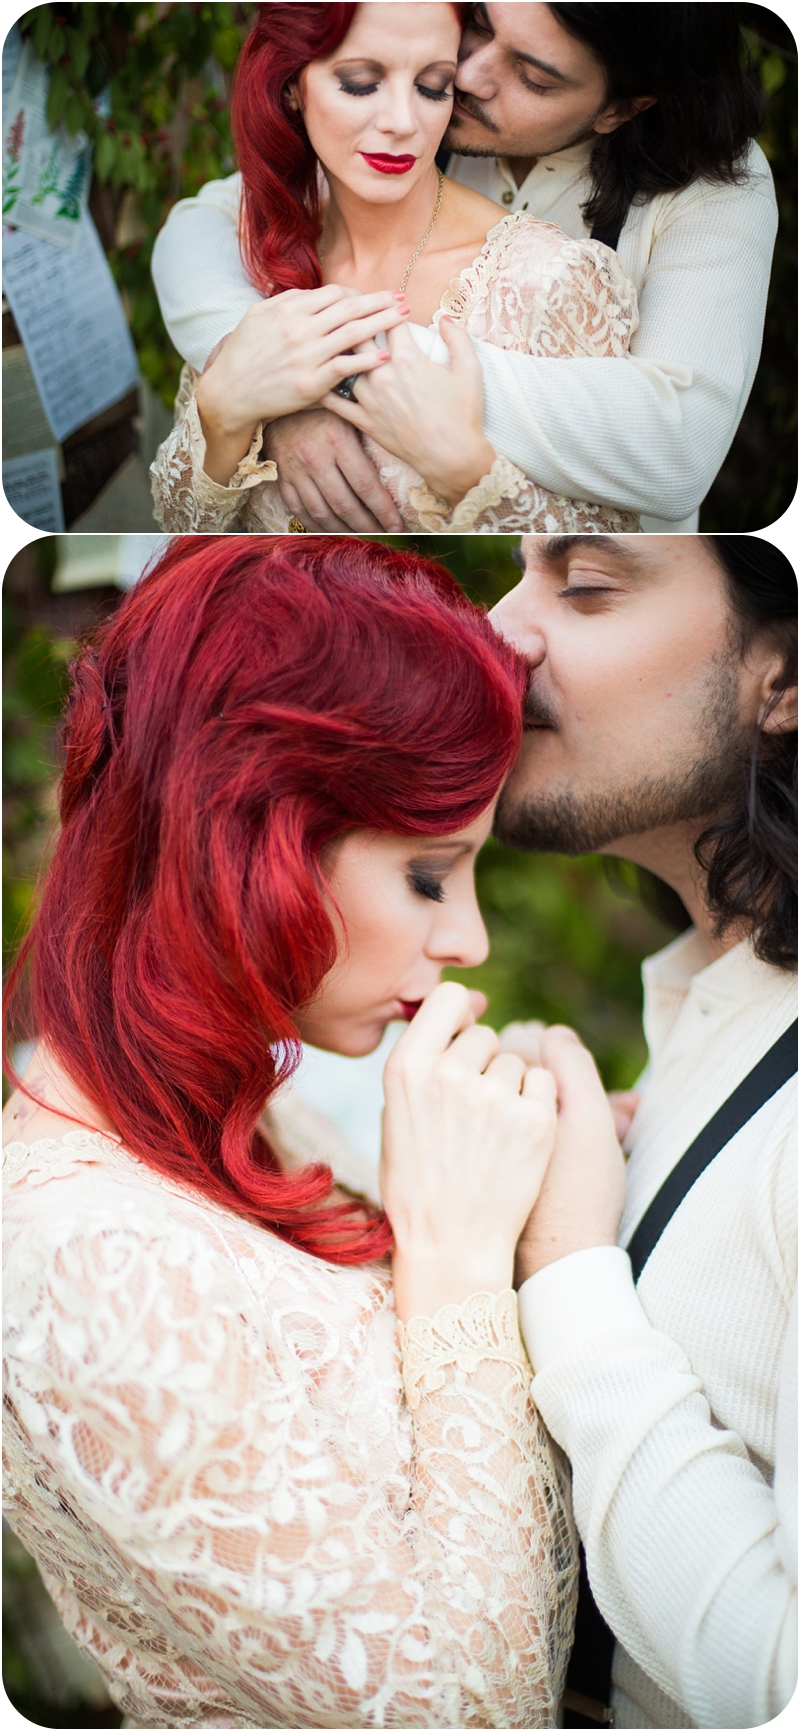 romantic wedding portraits moulin rouge inspired